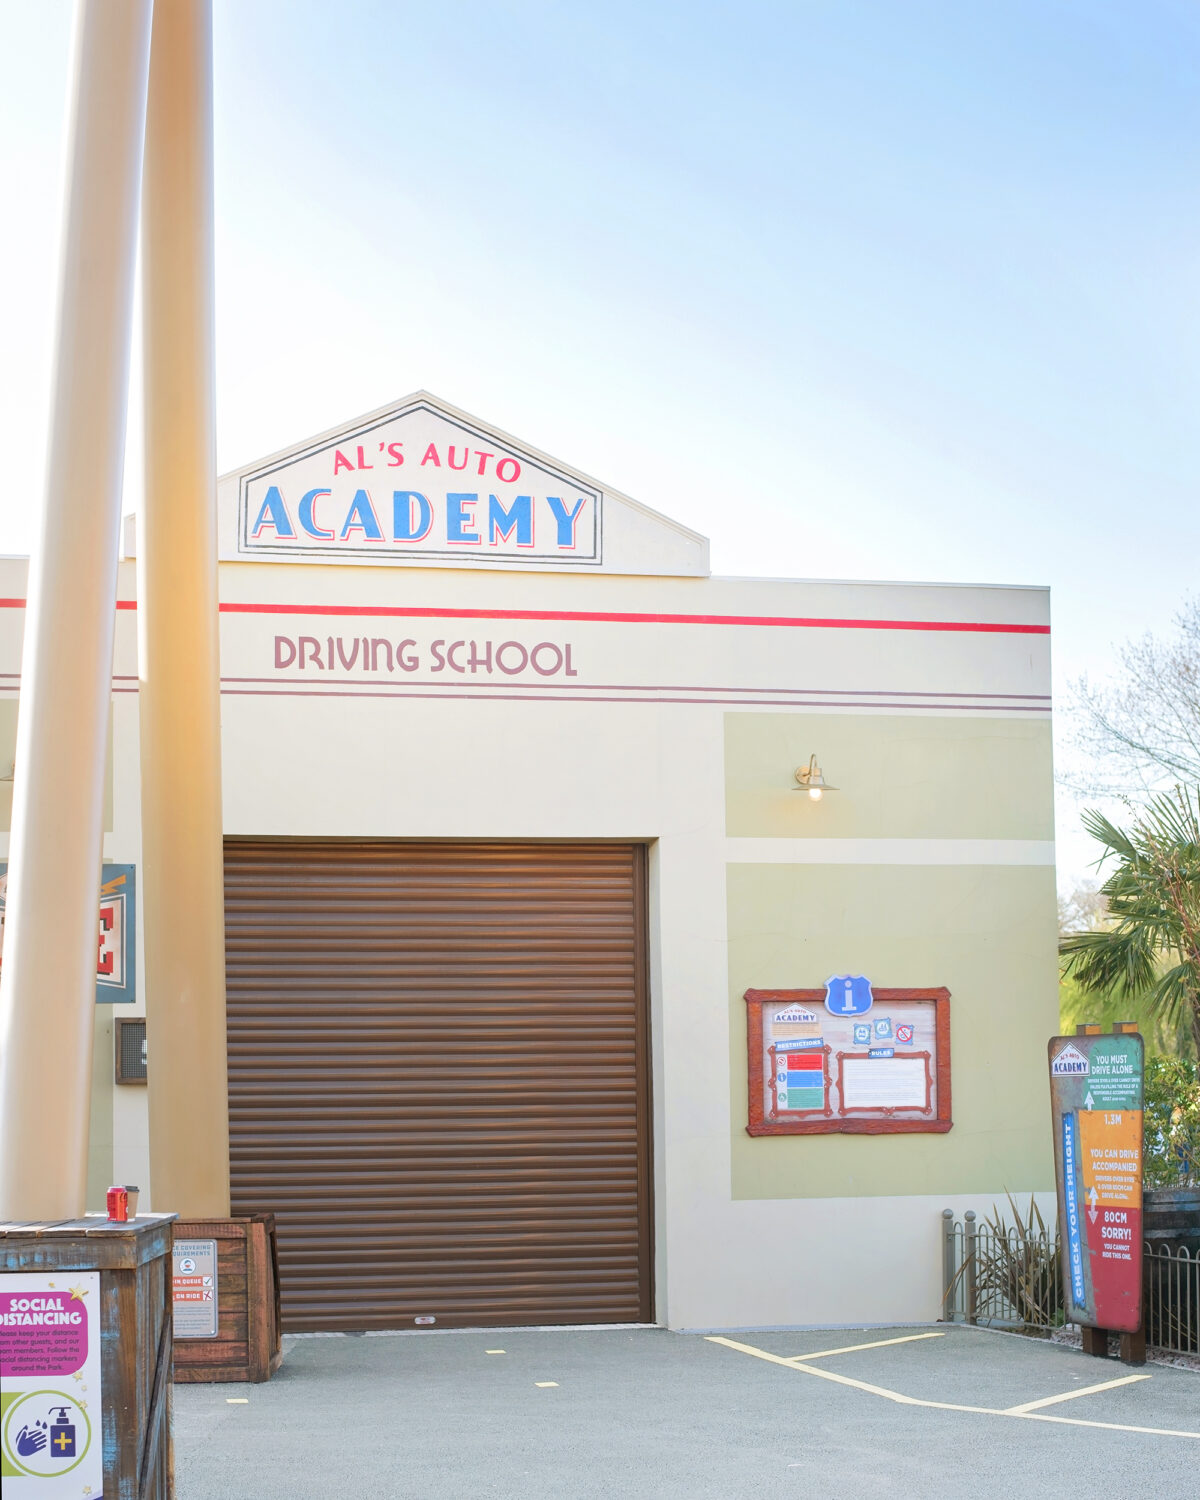 Image shows the building for Al's Auto Academy Driving School at Tornado Springs in Paultons Park.